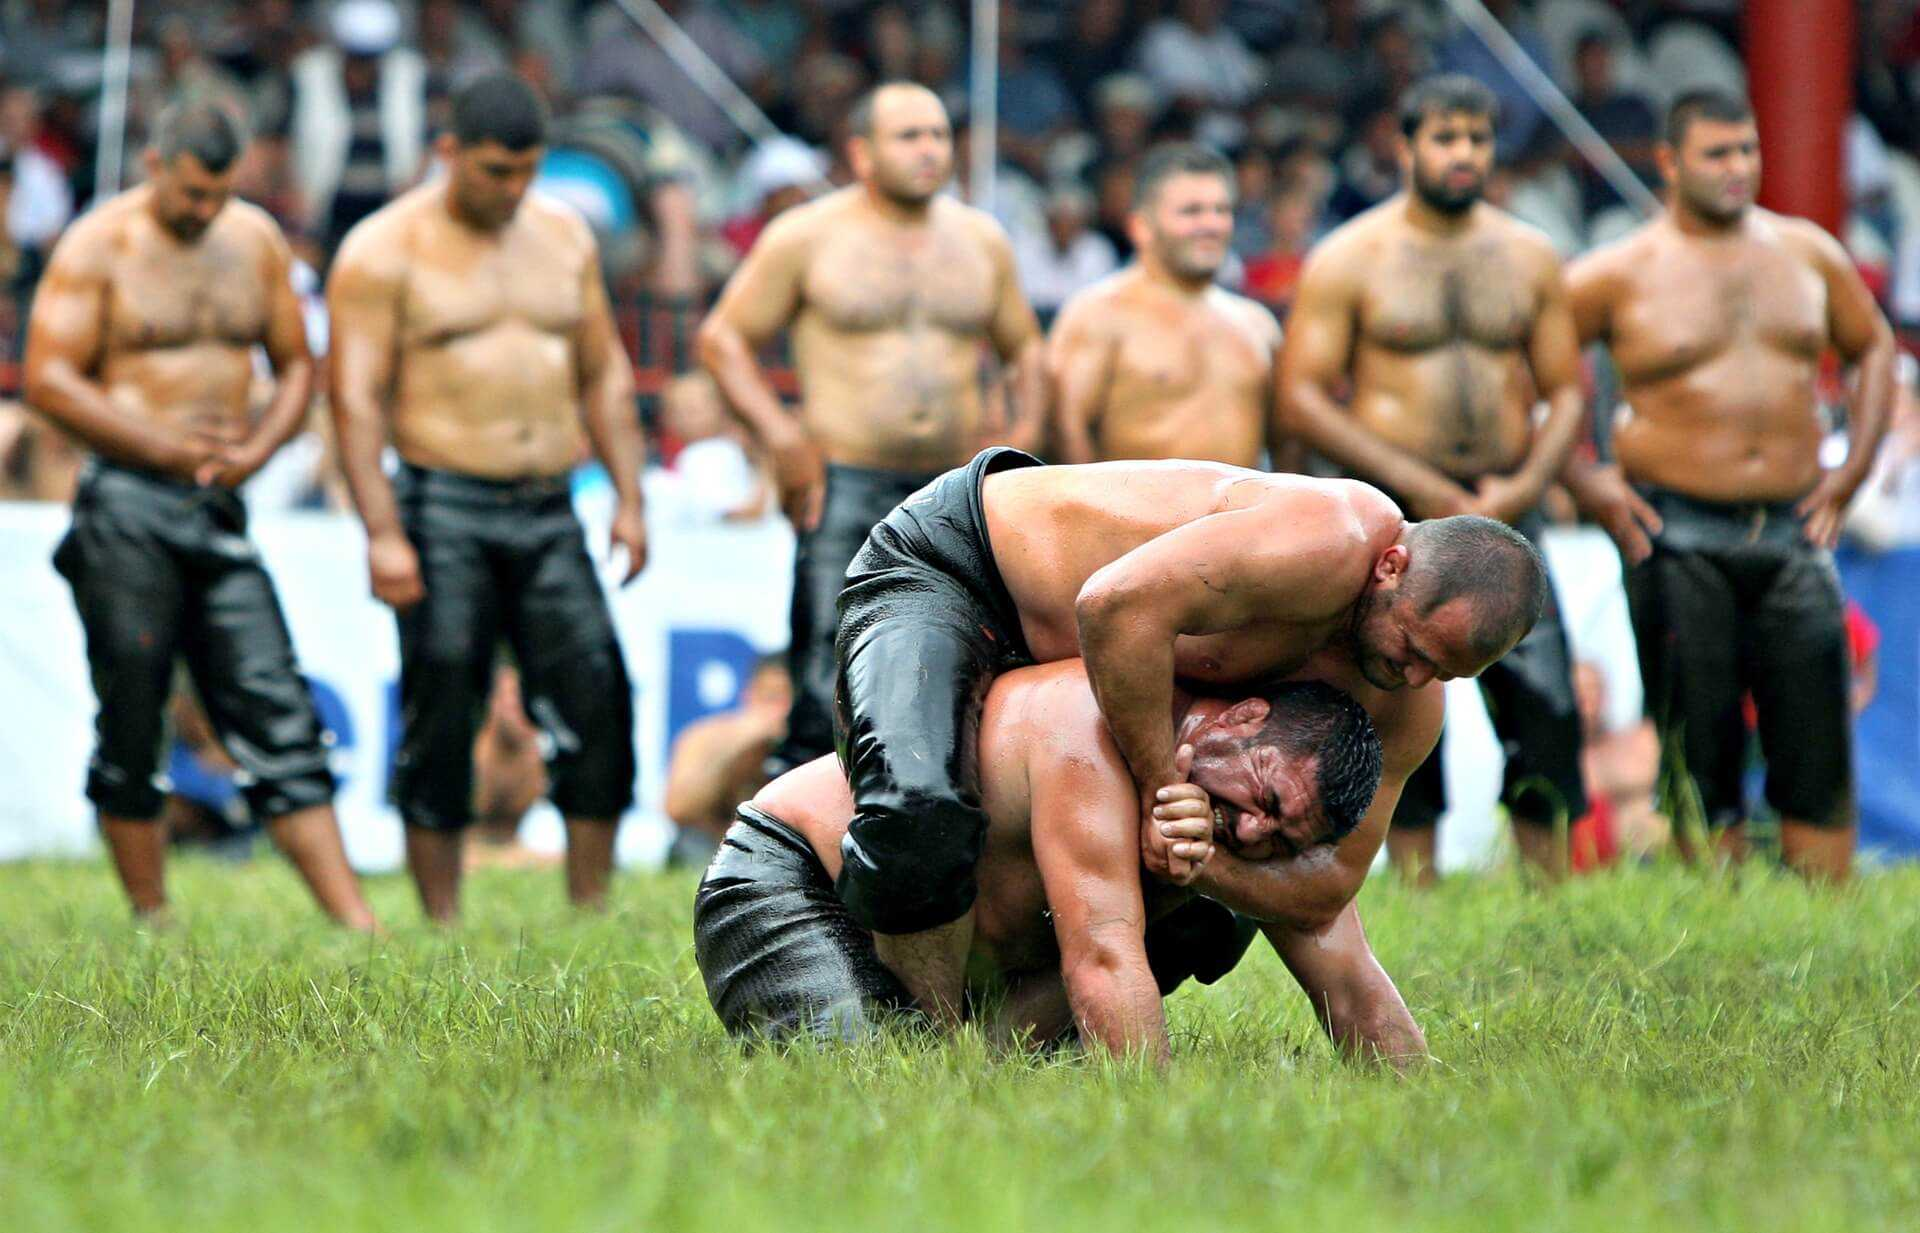 kirkpinar-oil-wrestling-soon-to-be-a-tourist-attraction